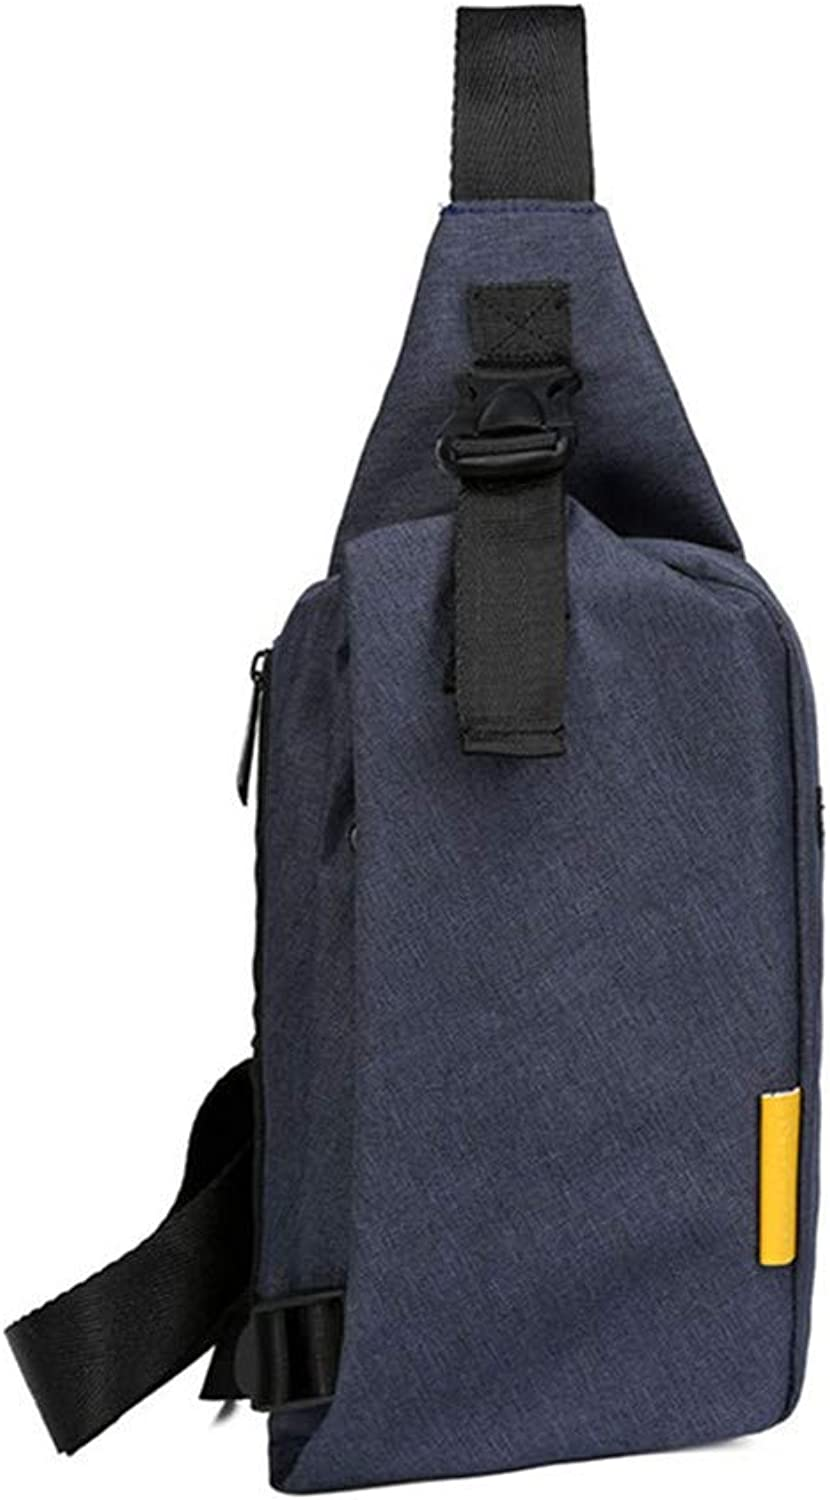 Small Chest Bag Female Korean Casual Travel Shoulder Bag Men Outdoor Sports Messenger Bag Canvas Bag Accurate Seams and Enhanced Craftsmanship Make it More Durable and Stronger,blueee